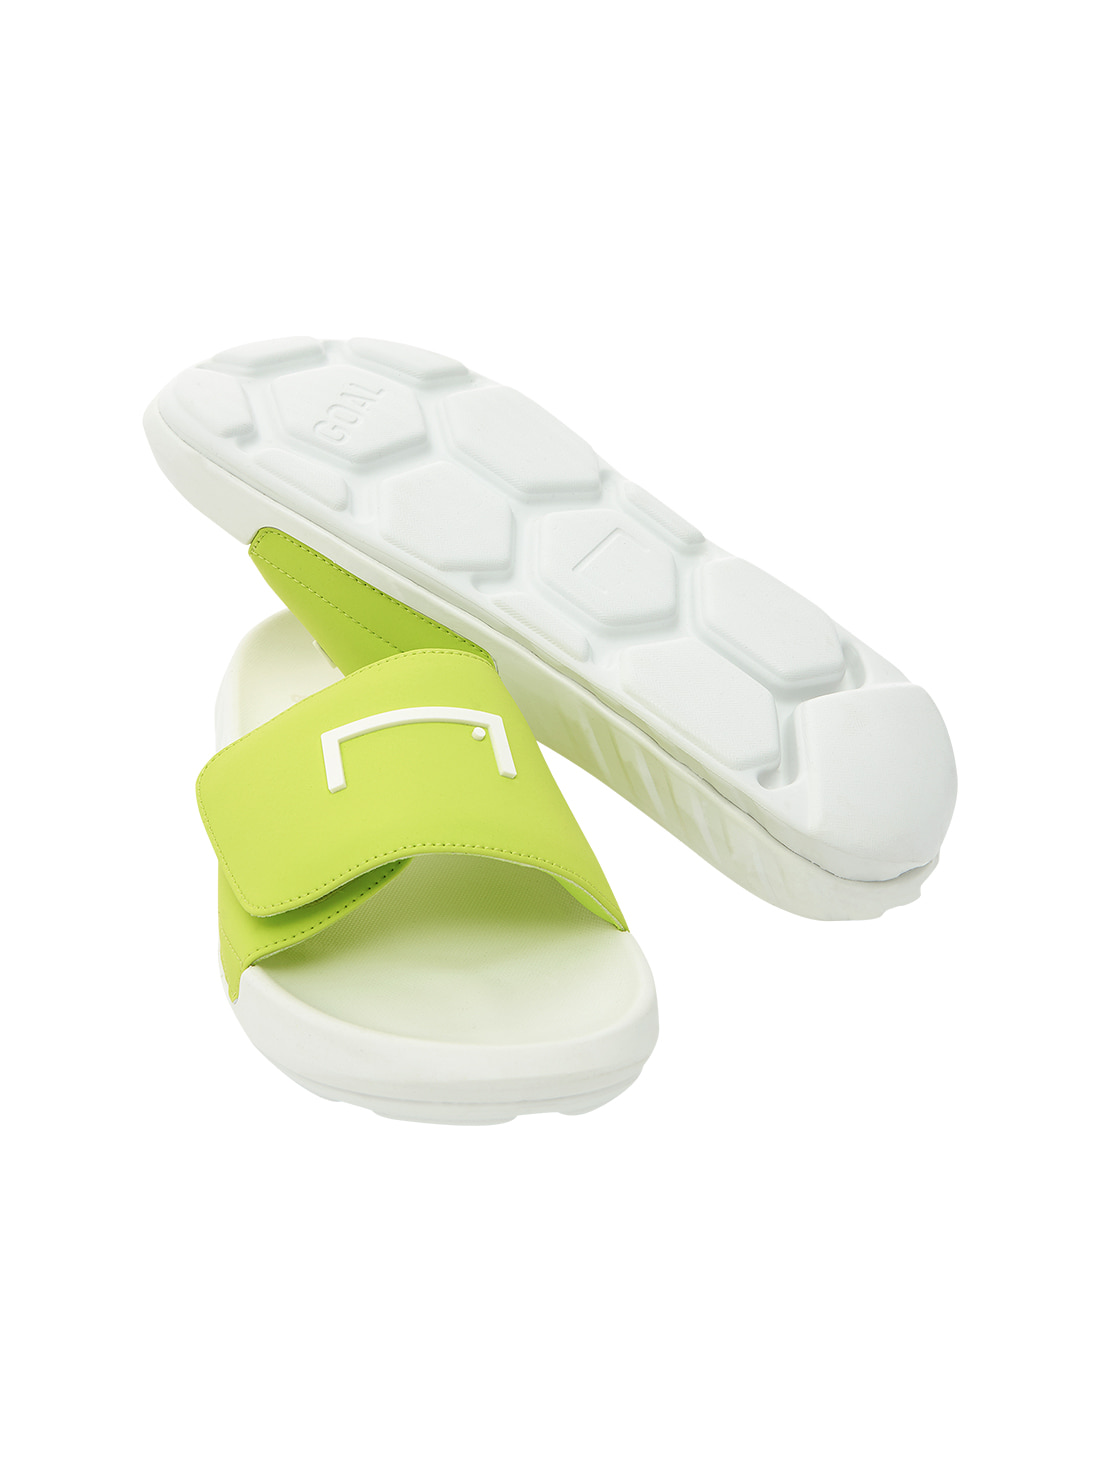 GRAB-ITY BALANCE SLIDE - LIME